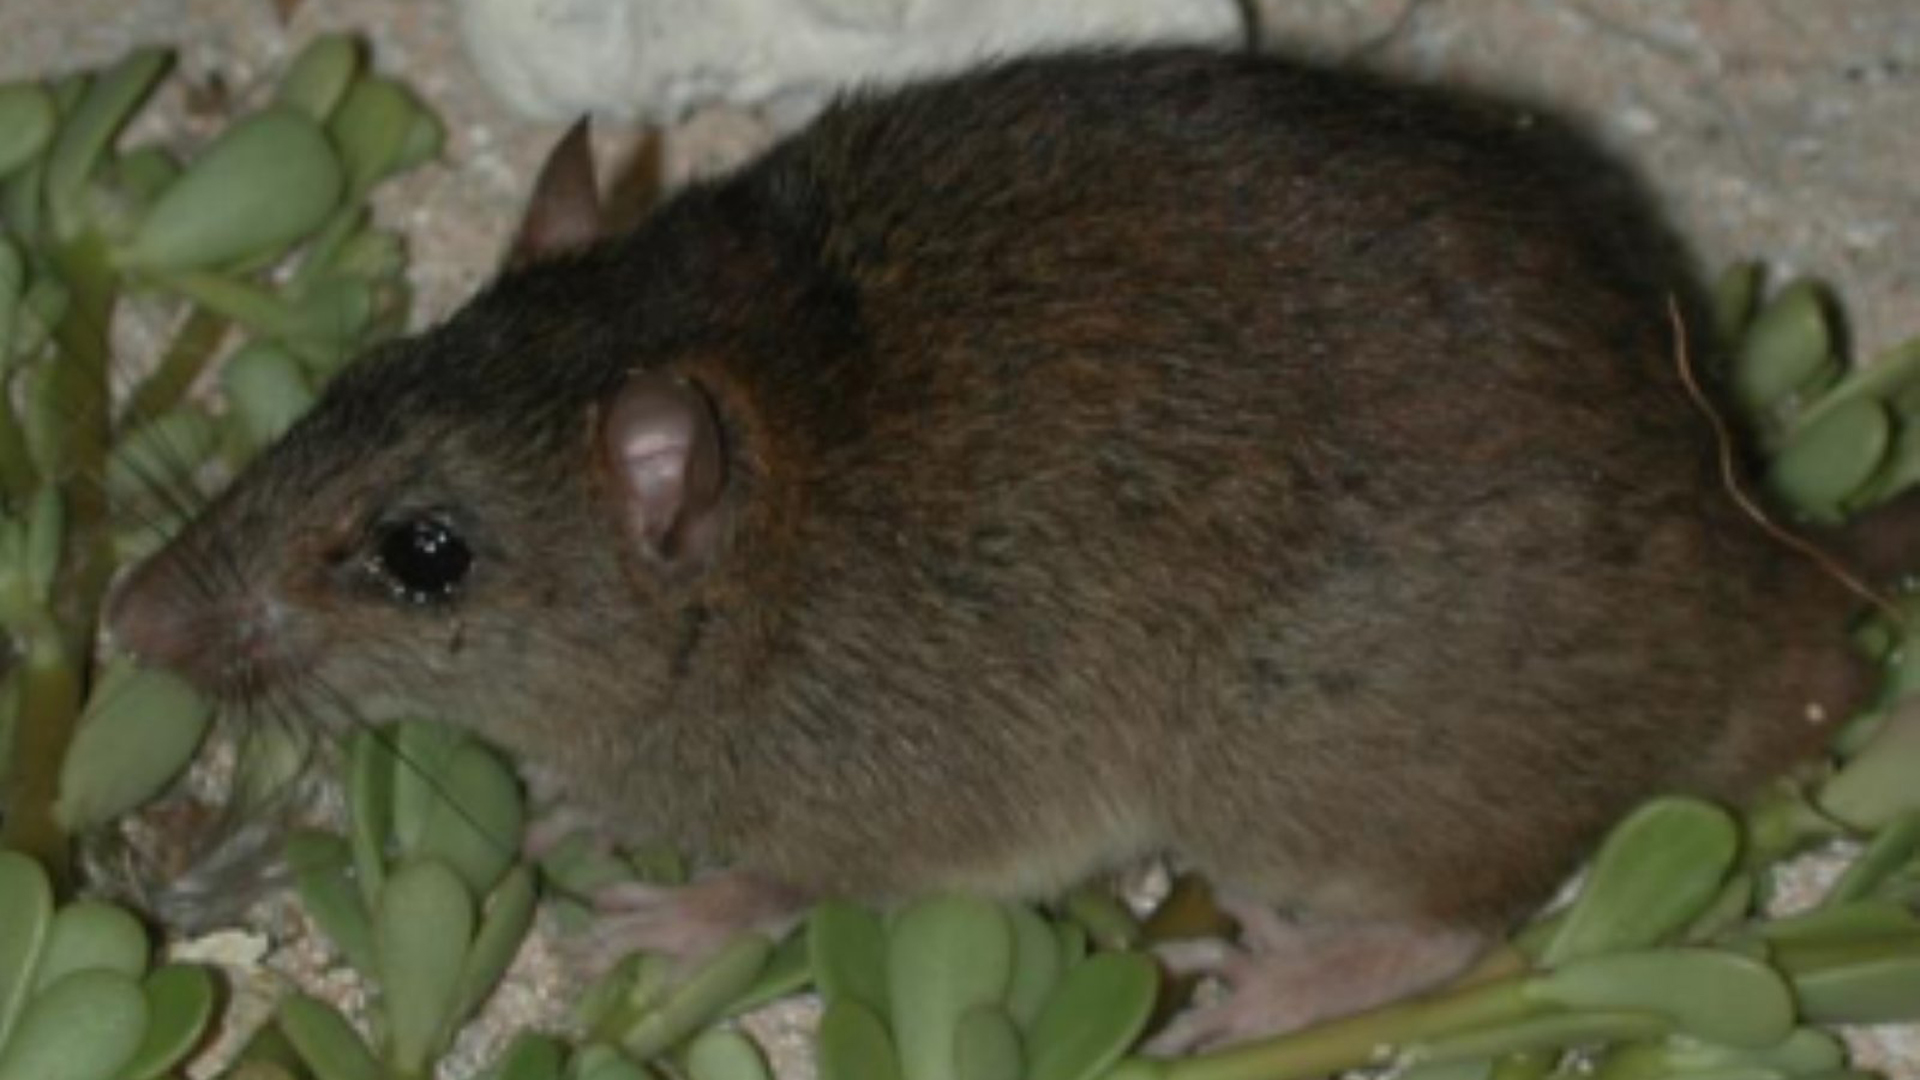 Bramble Cay melomys has been declared extinct due to climate change. (Credit: University of Queensland)